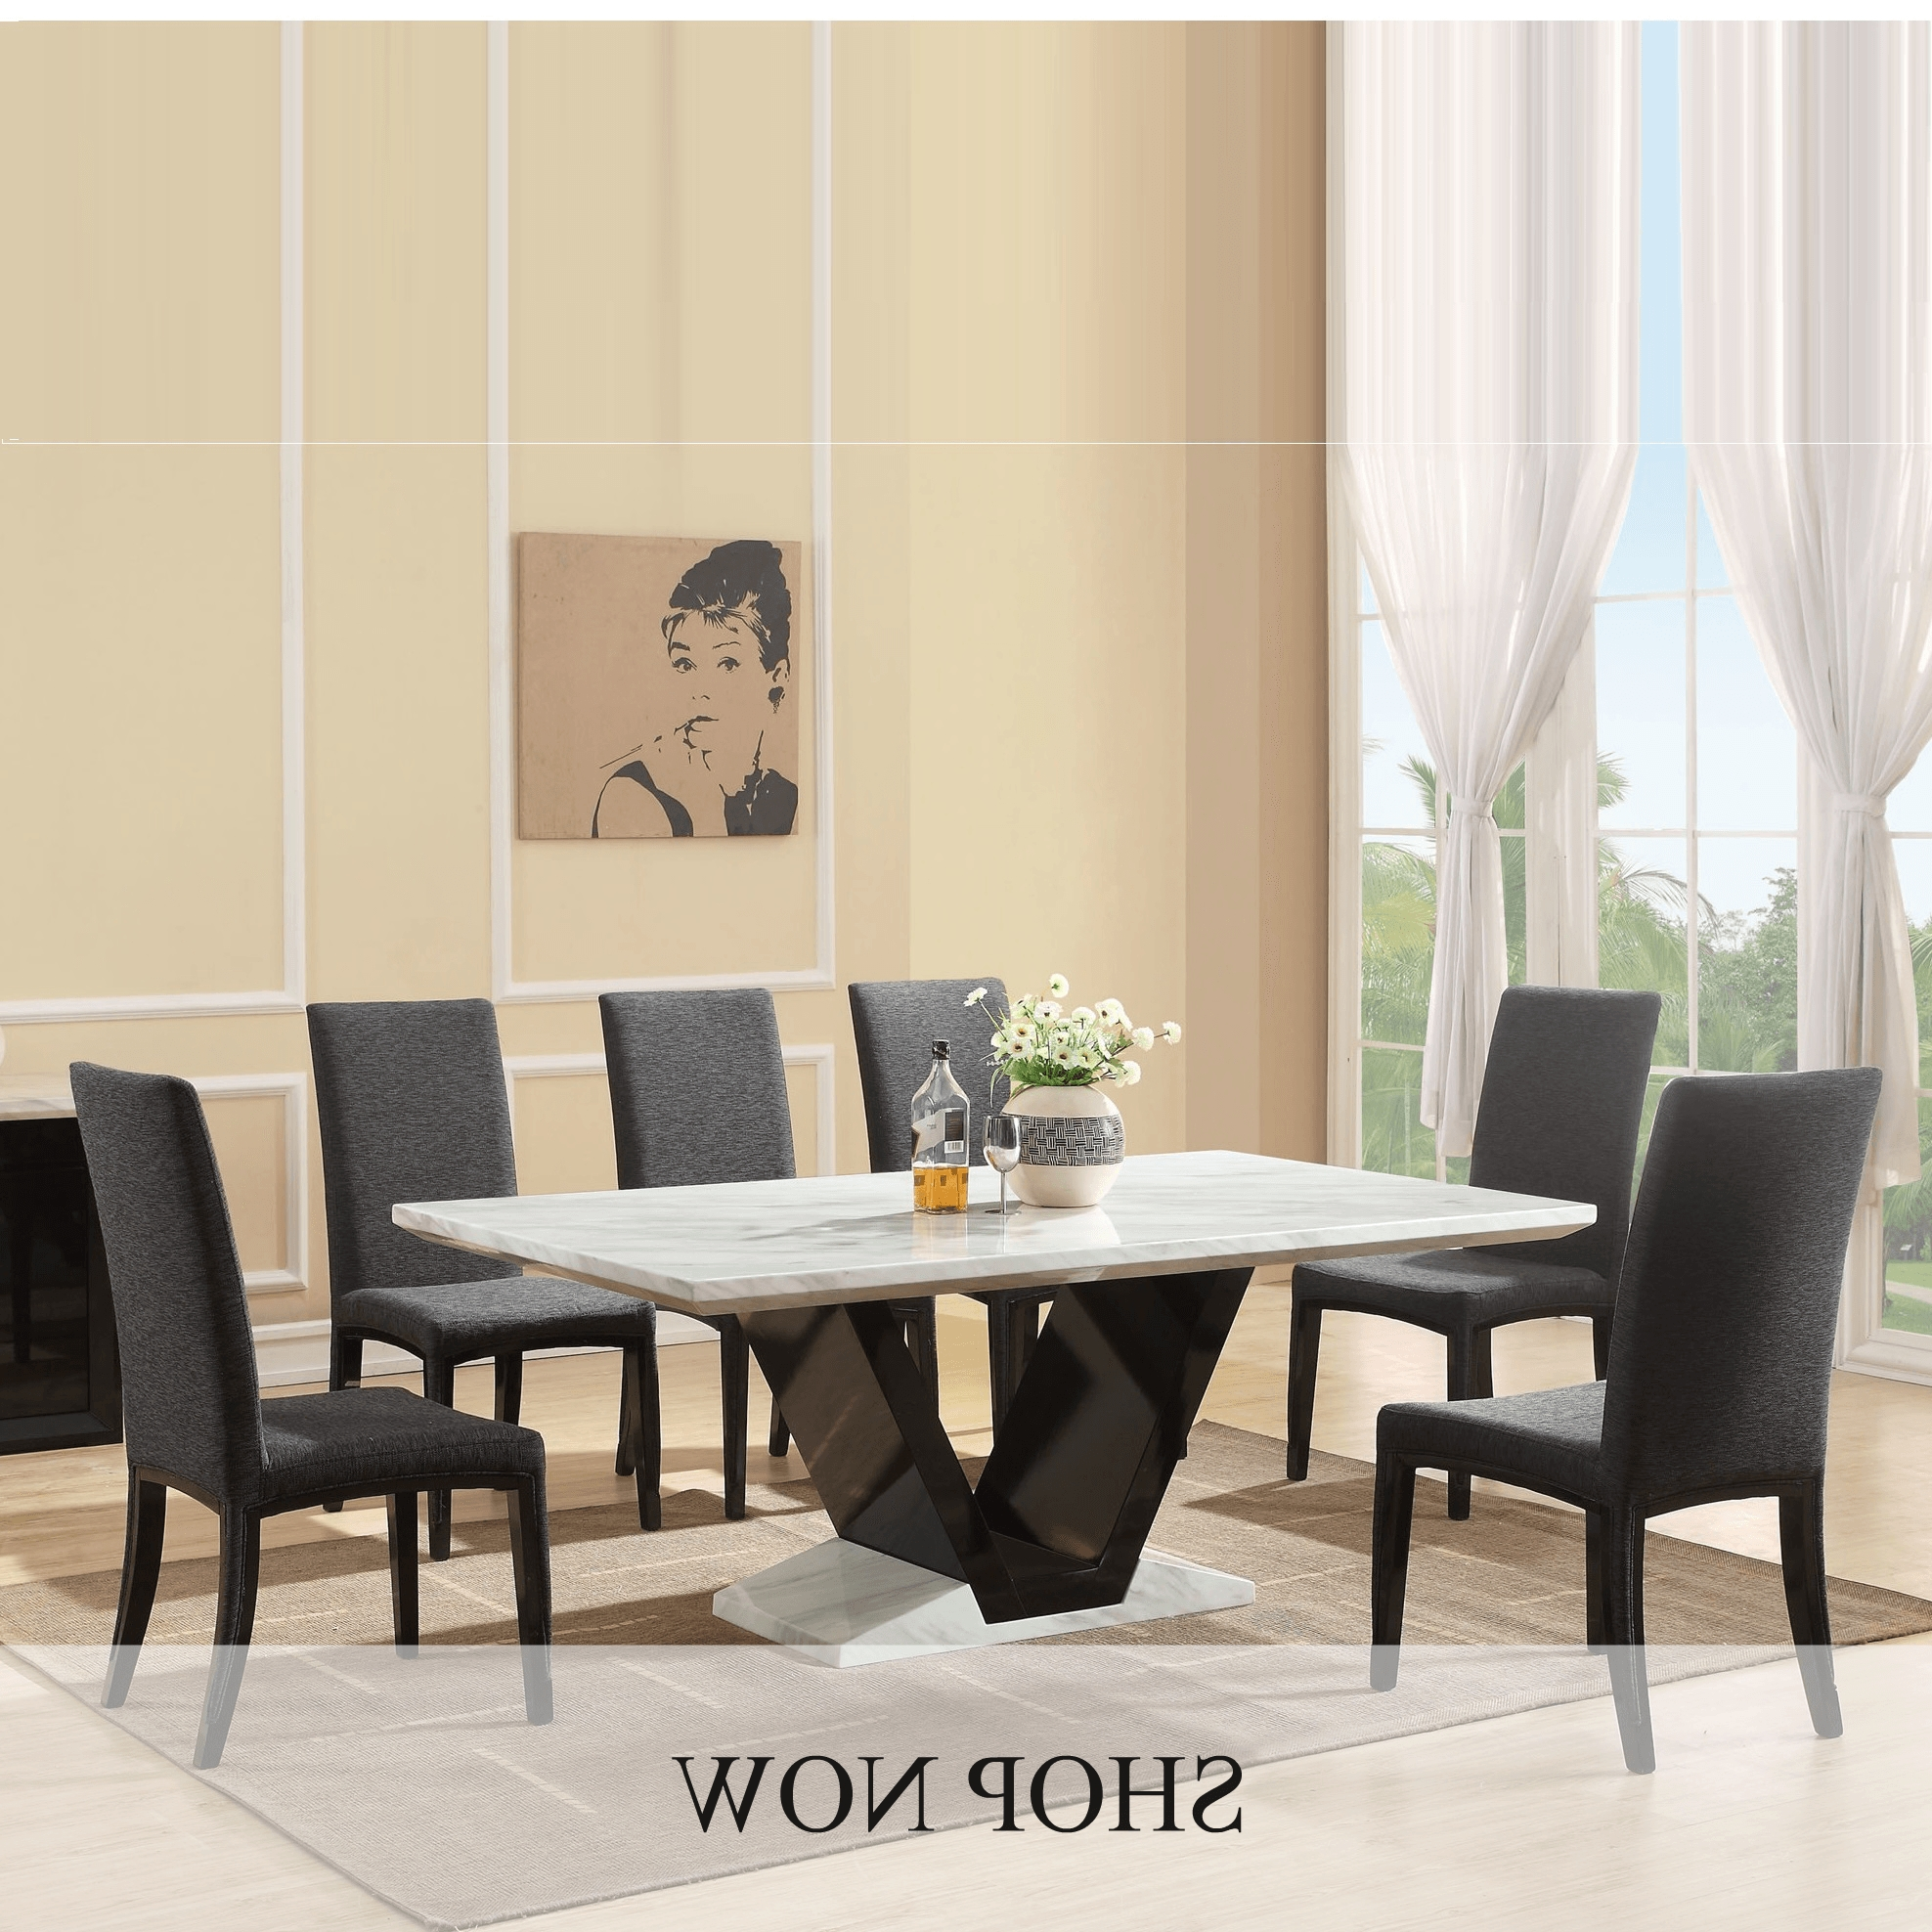 Marble Dining Table White – Marble Dining Table Creative Art Ideas Regarding Trendy White Dining Tables 8 Seater (View 15 of 25)